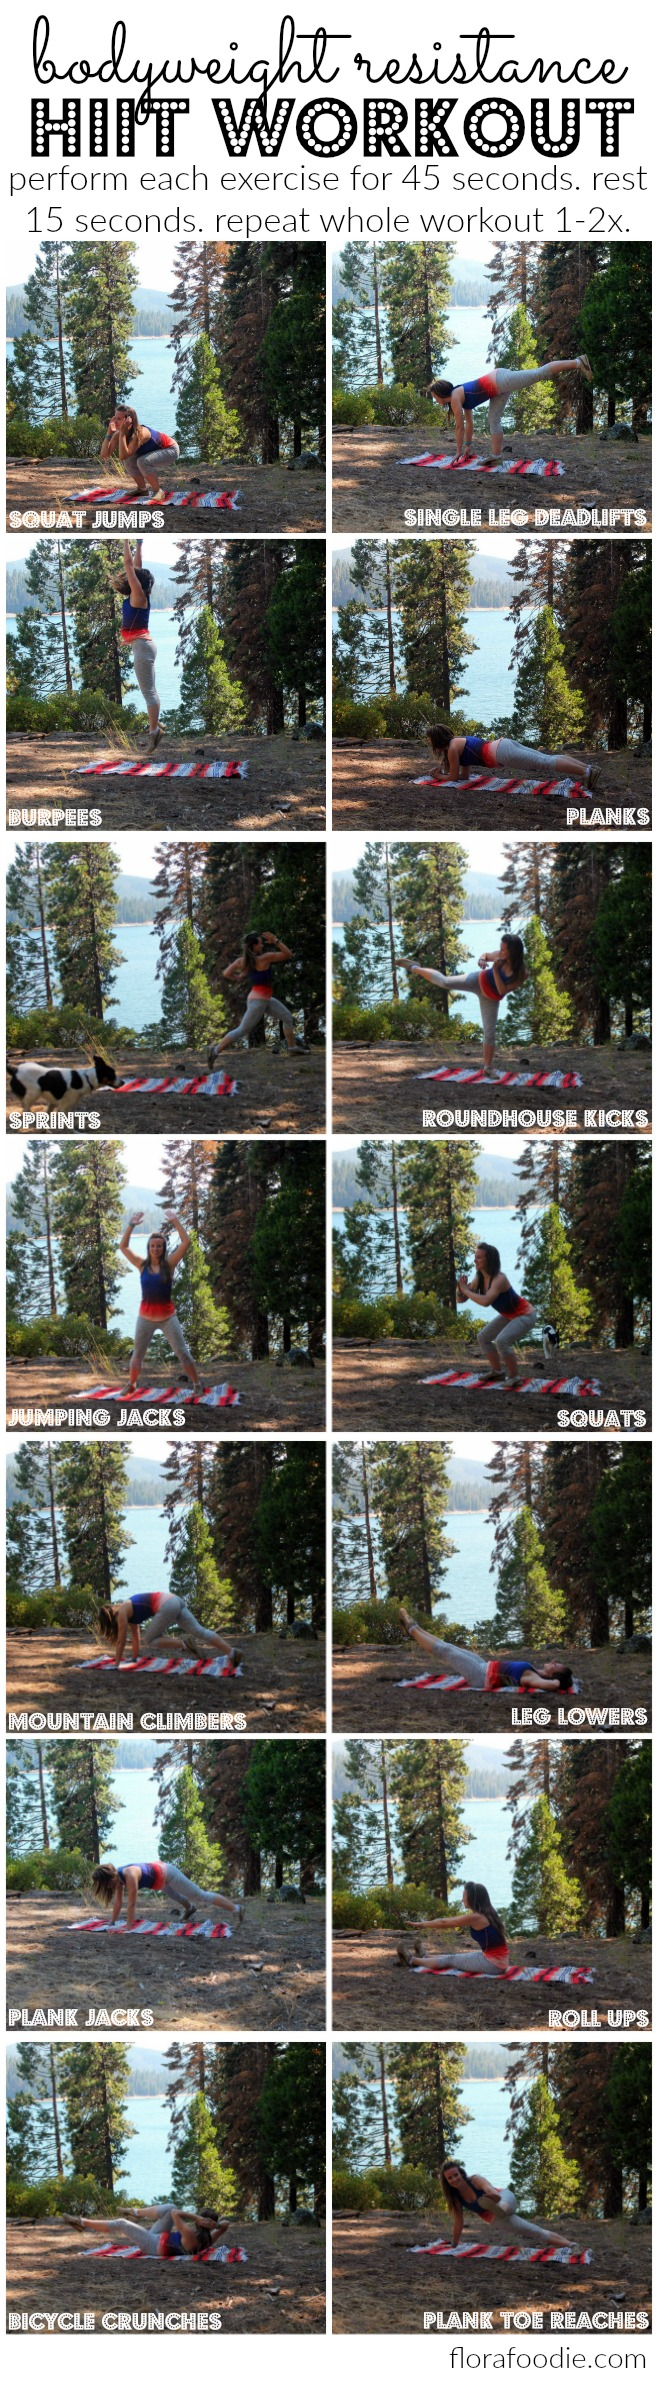 bodyweight resistance HIIT workout